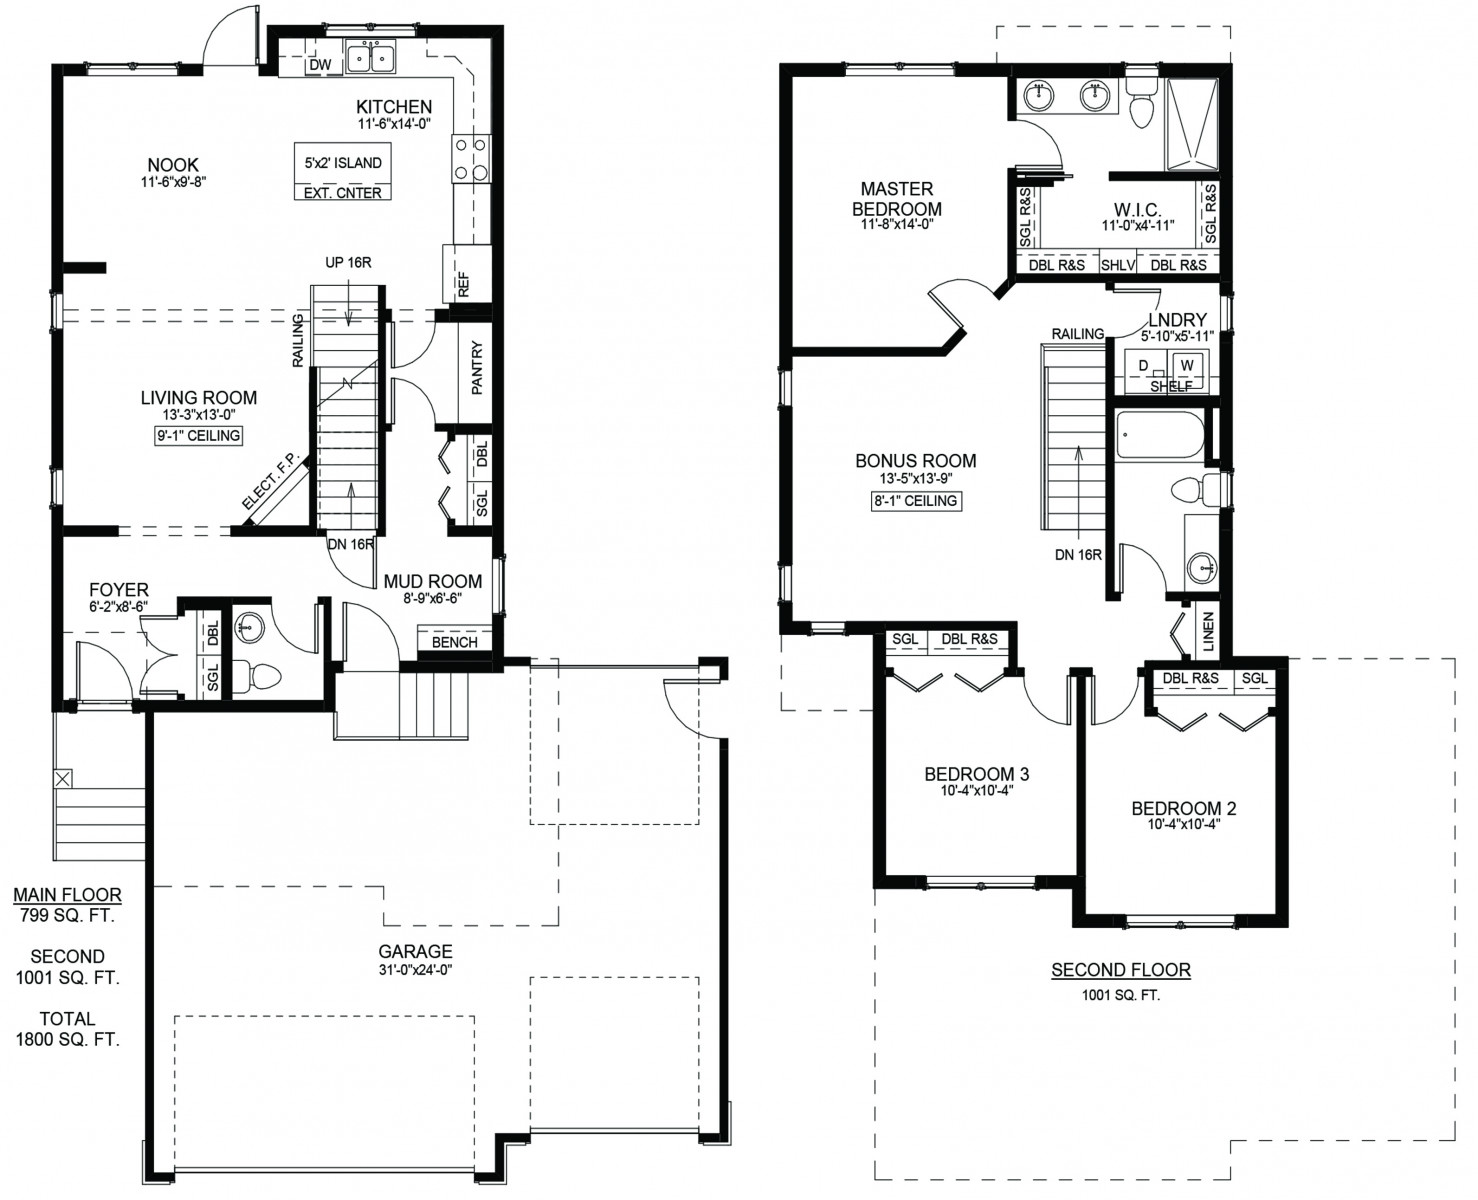 427 Hamm Lane Floor Plan